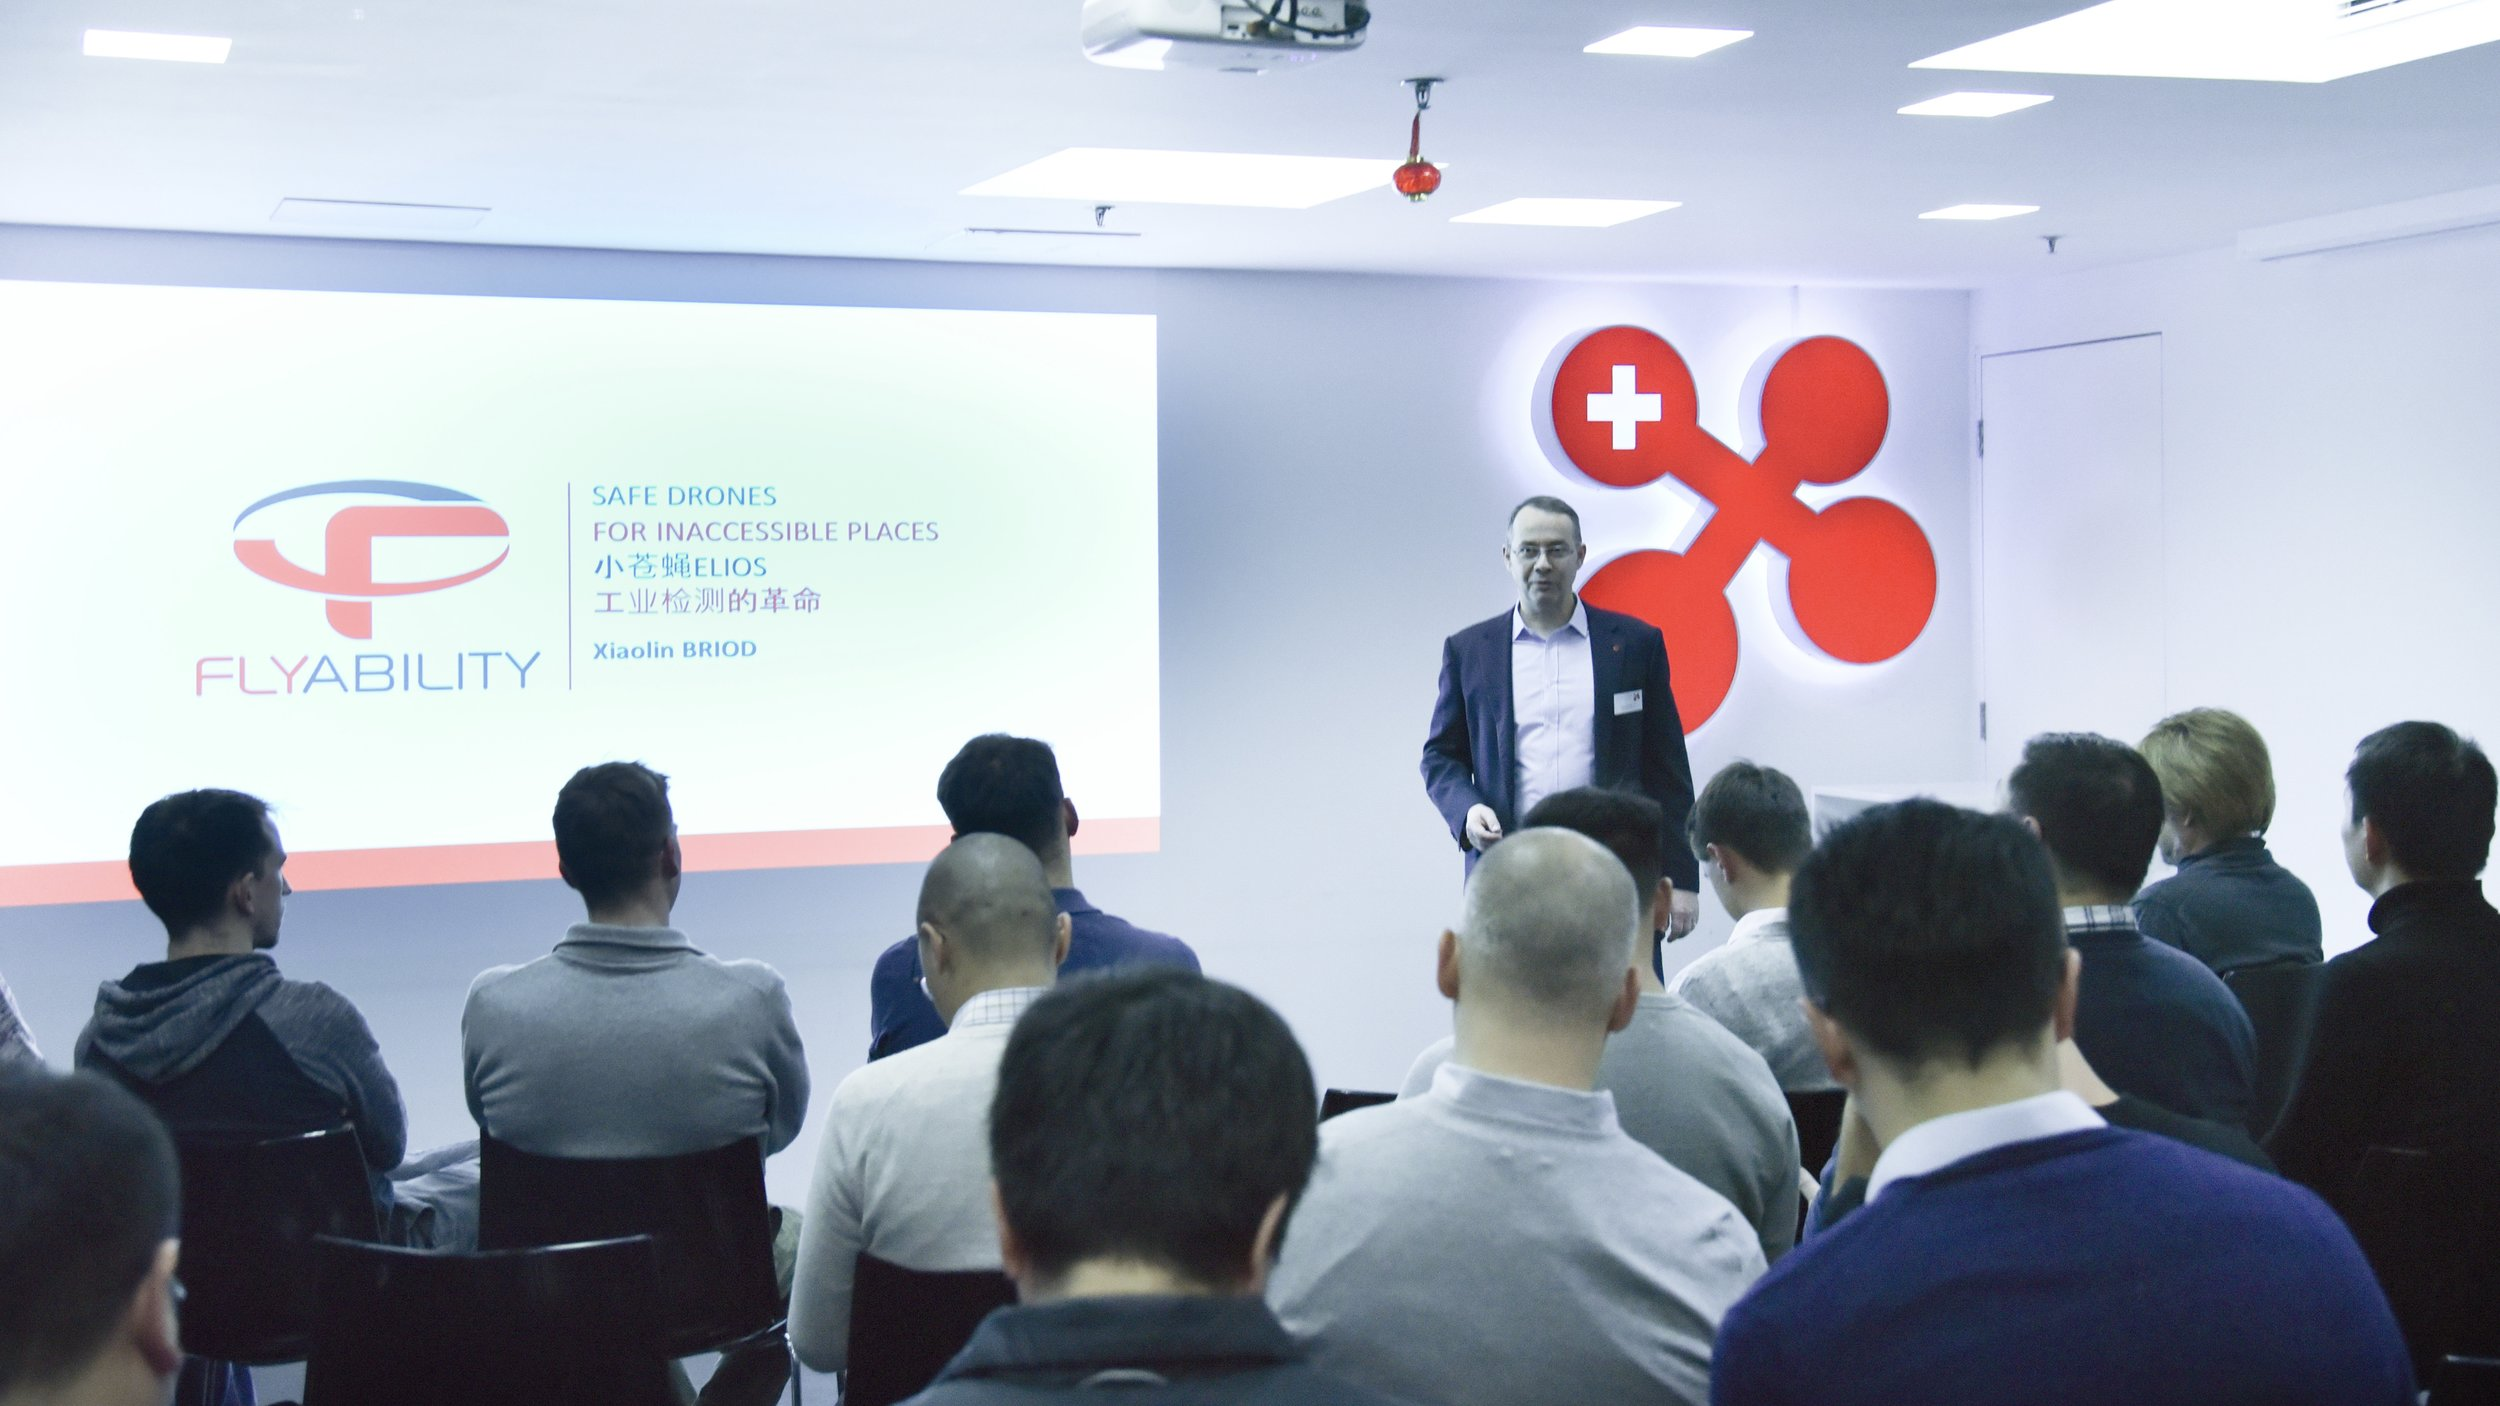 Dr. Felix Moesner, Science Consul & CEO of swissnex China, gave the welcome speech